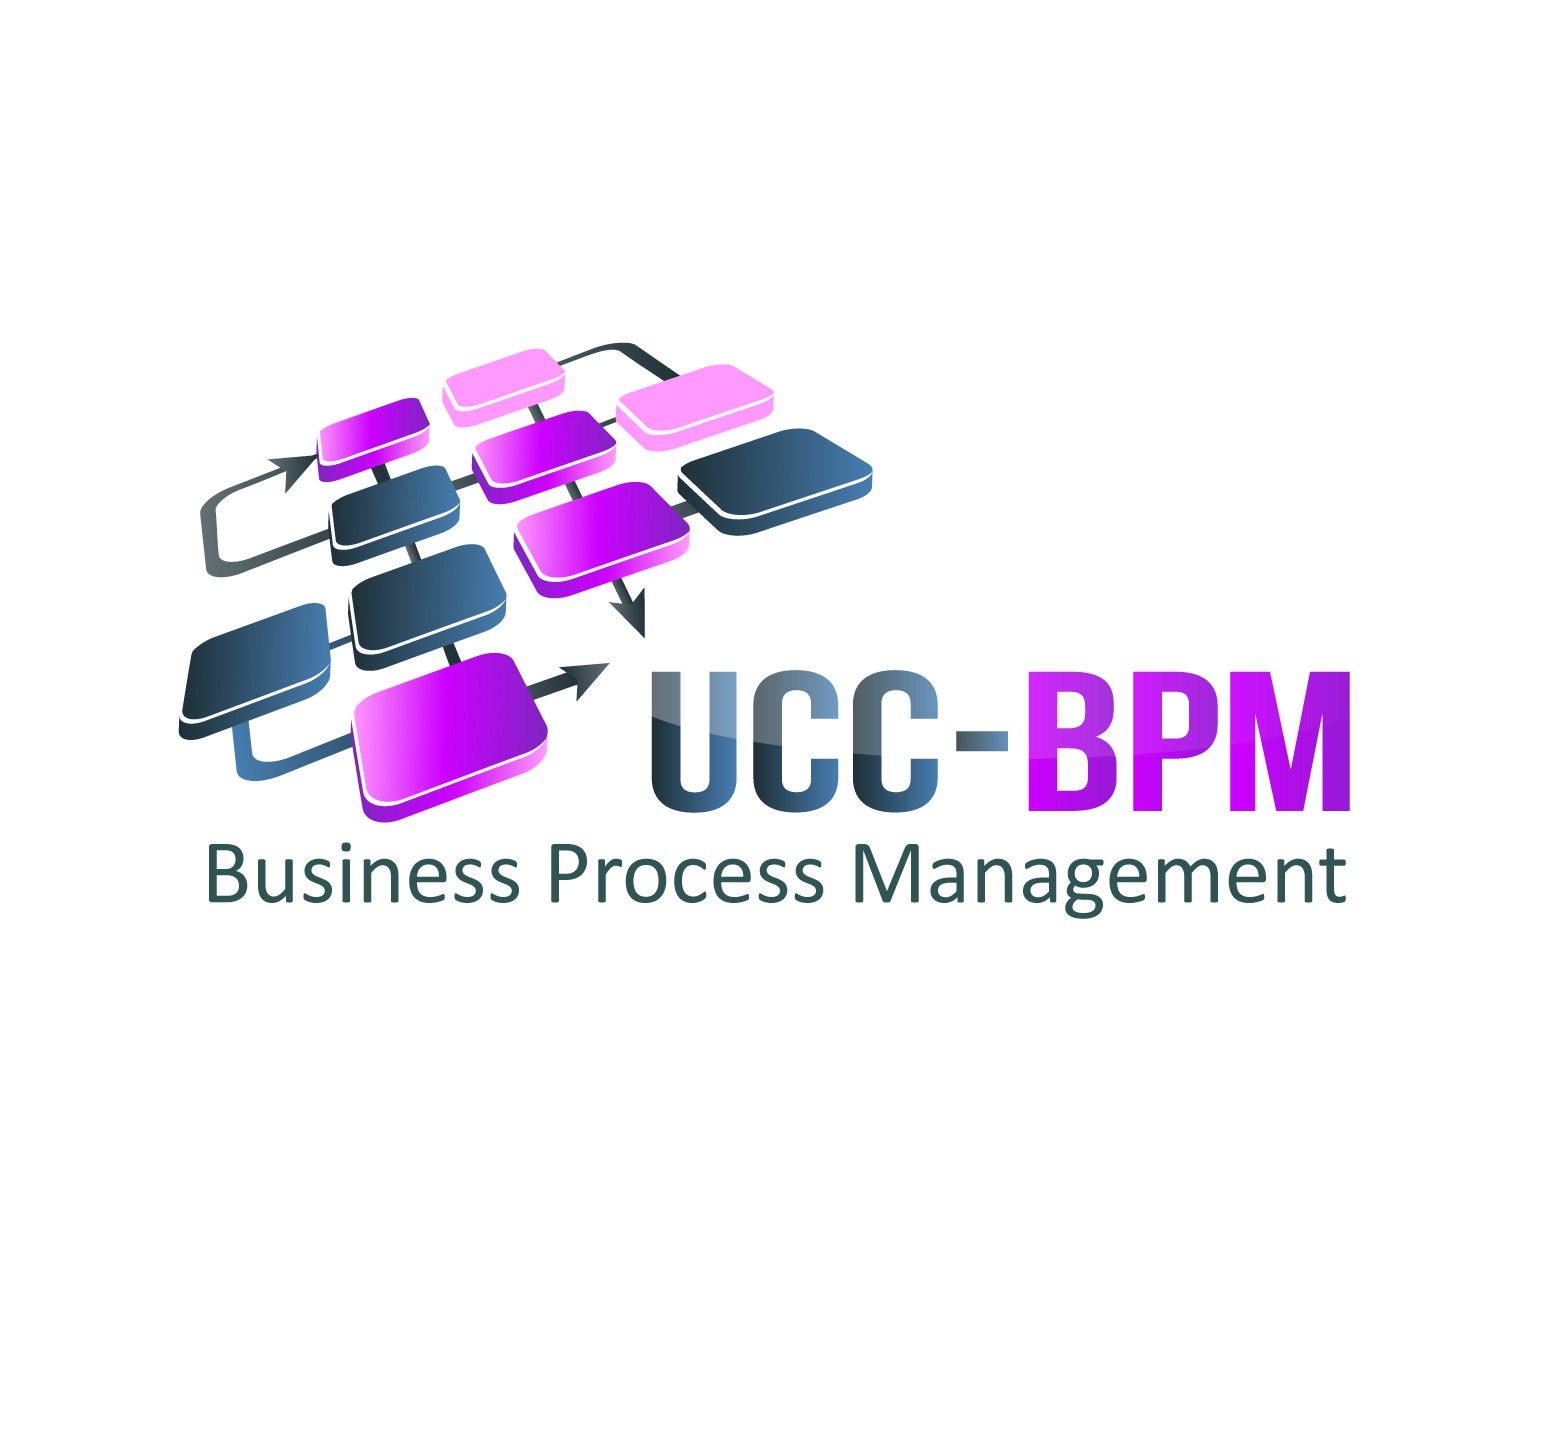 University Competence Center for Business Process Management (UCC-BPM) needs a new logo